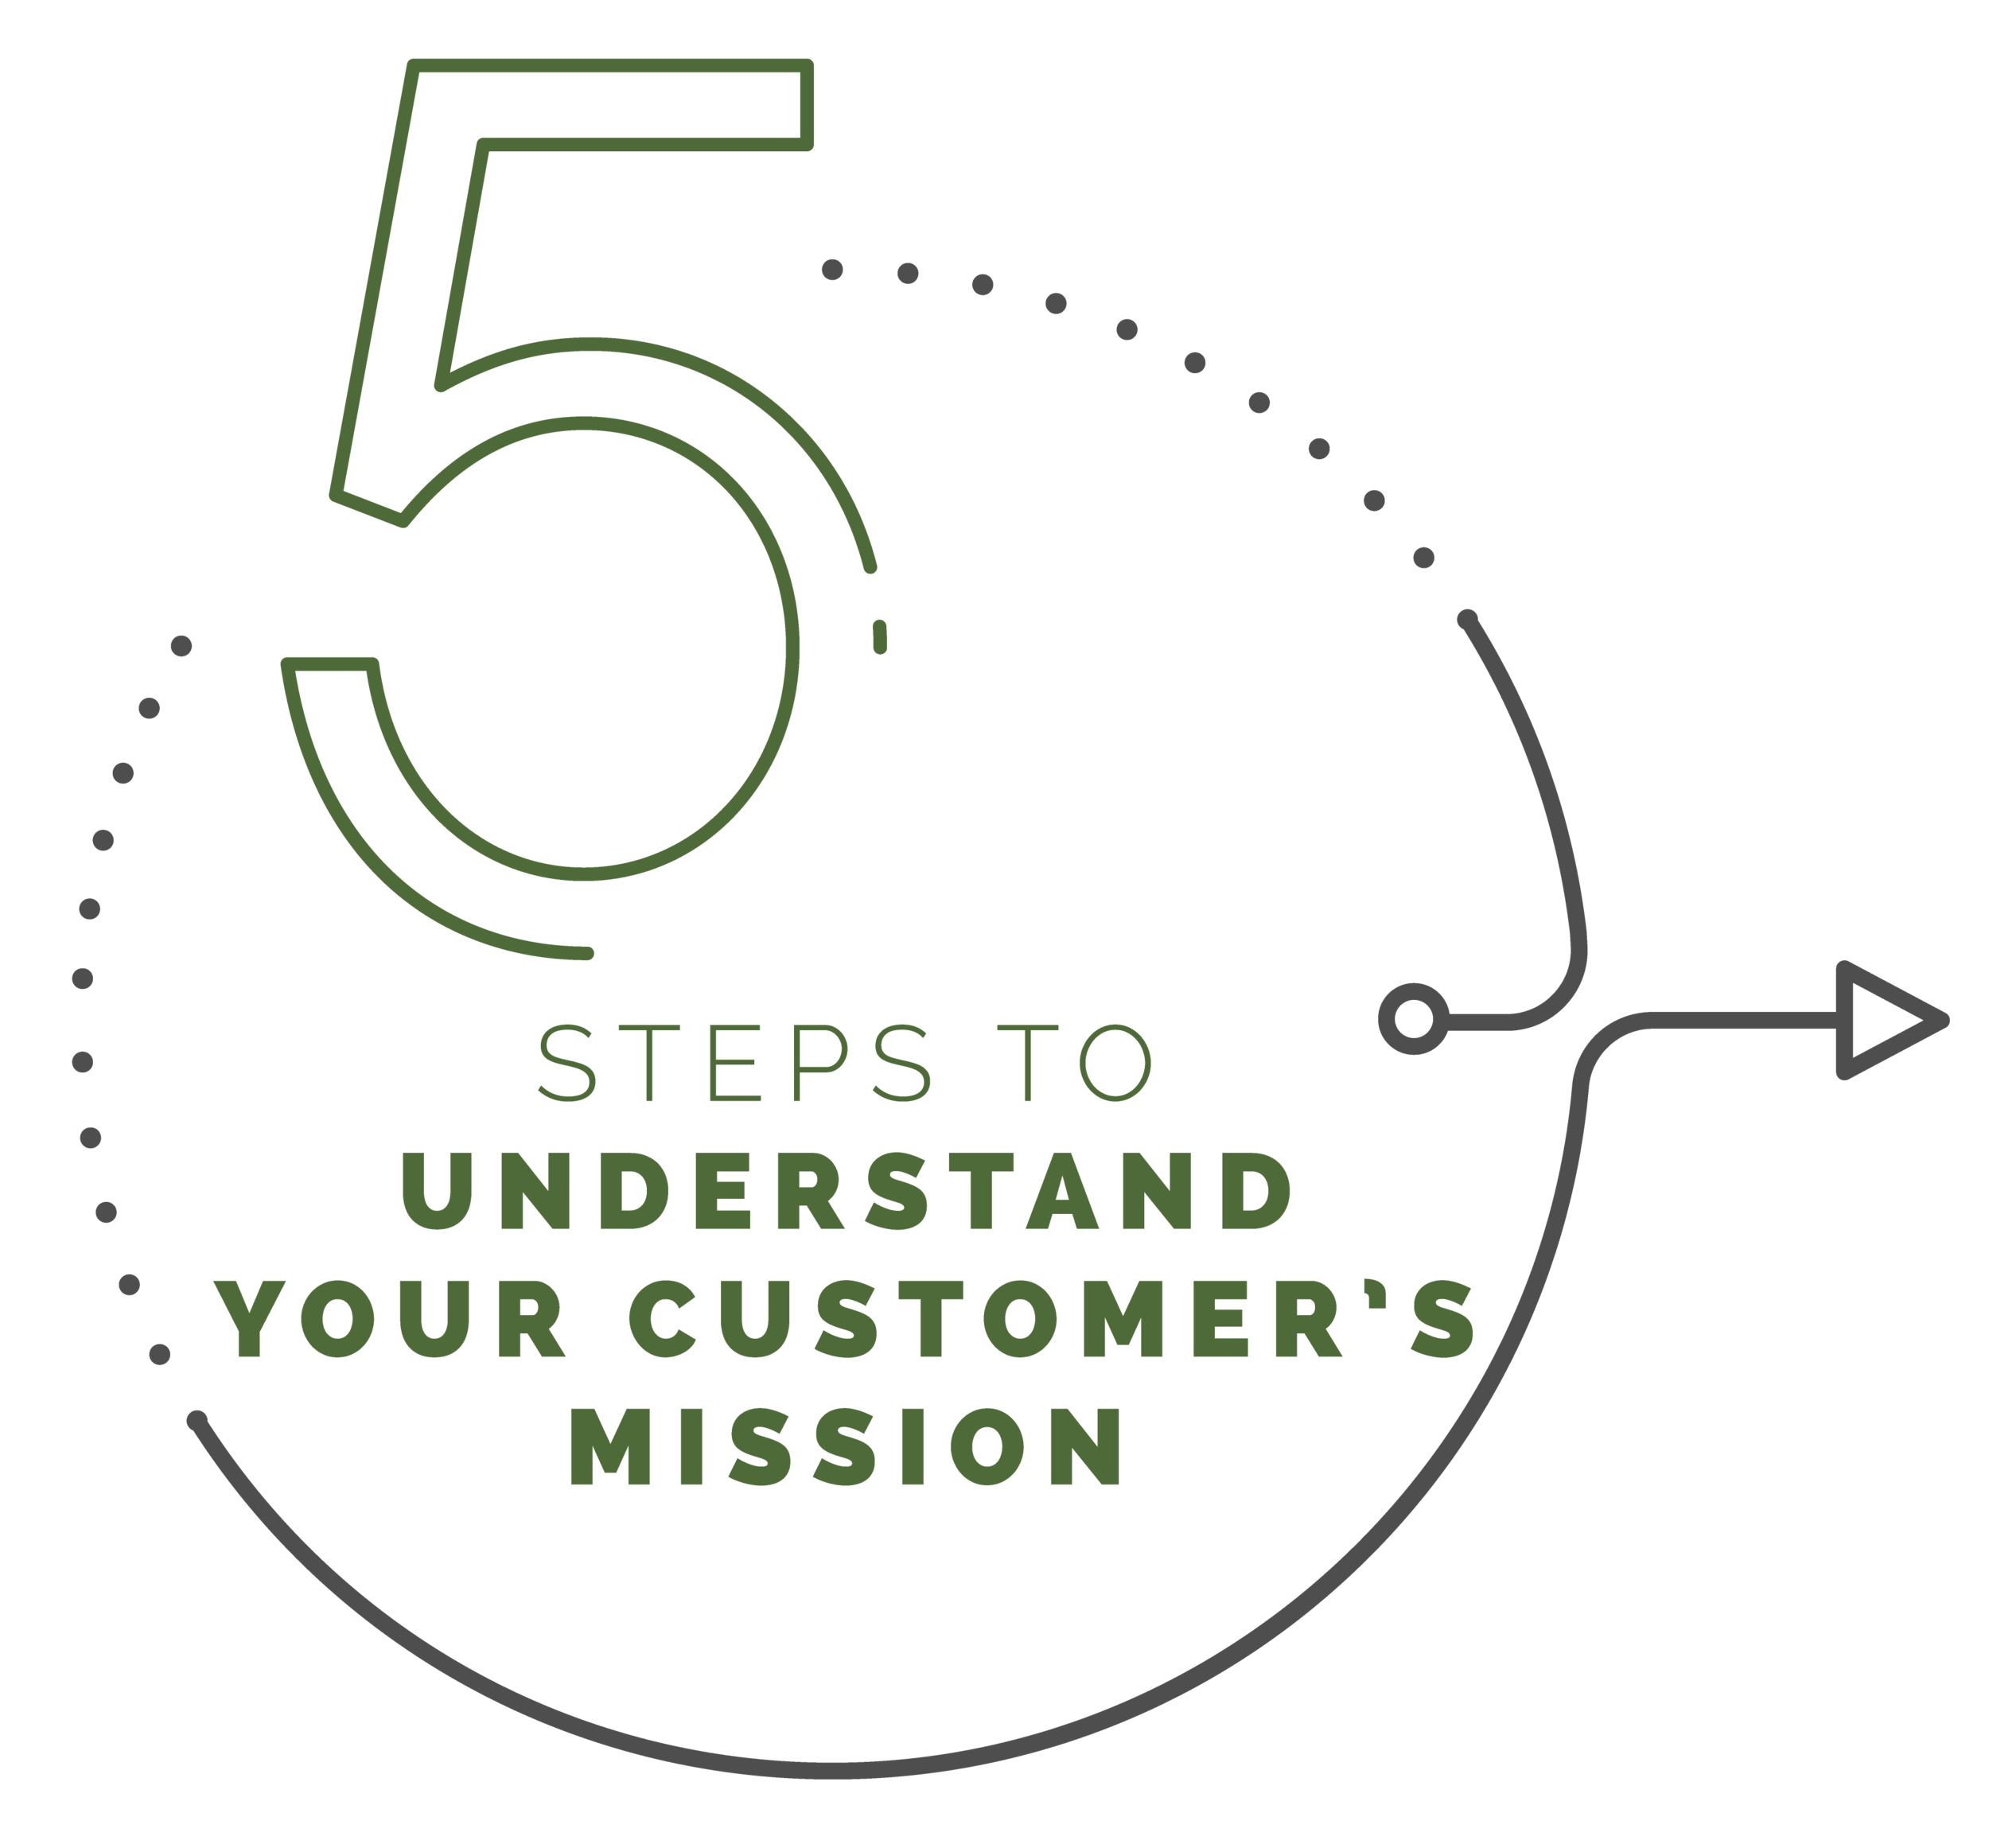 5 steps to understand your customer's mission